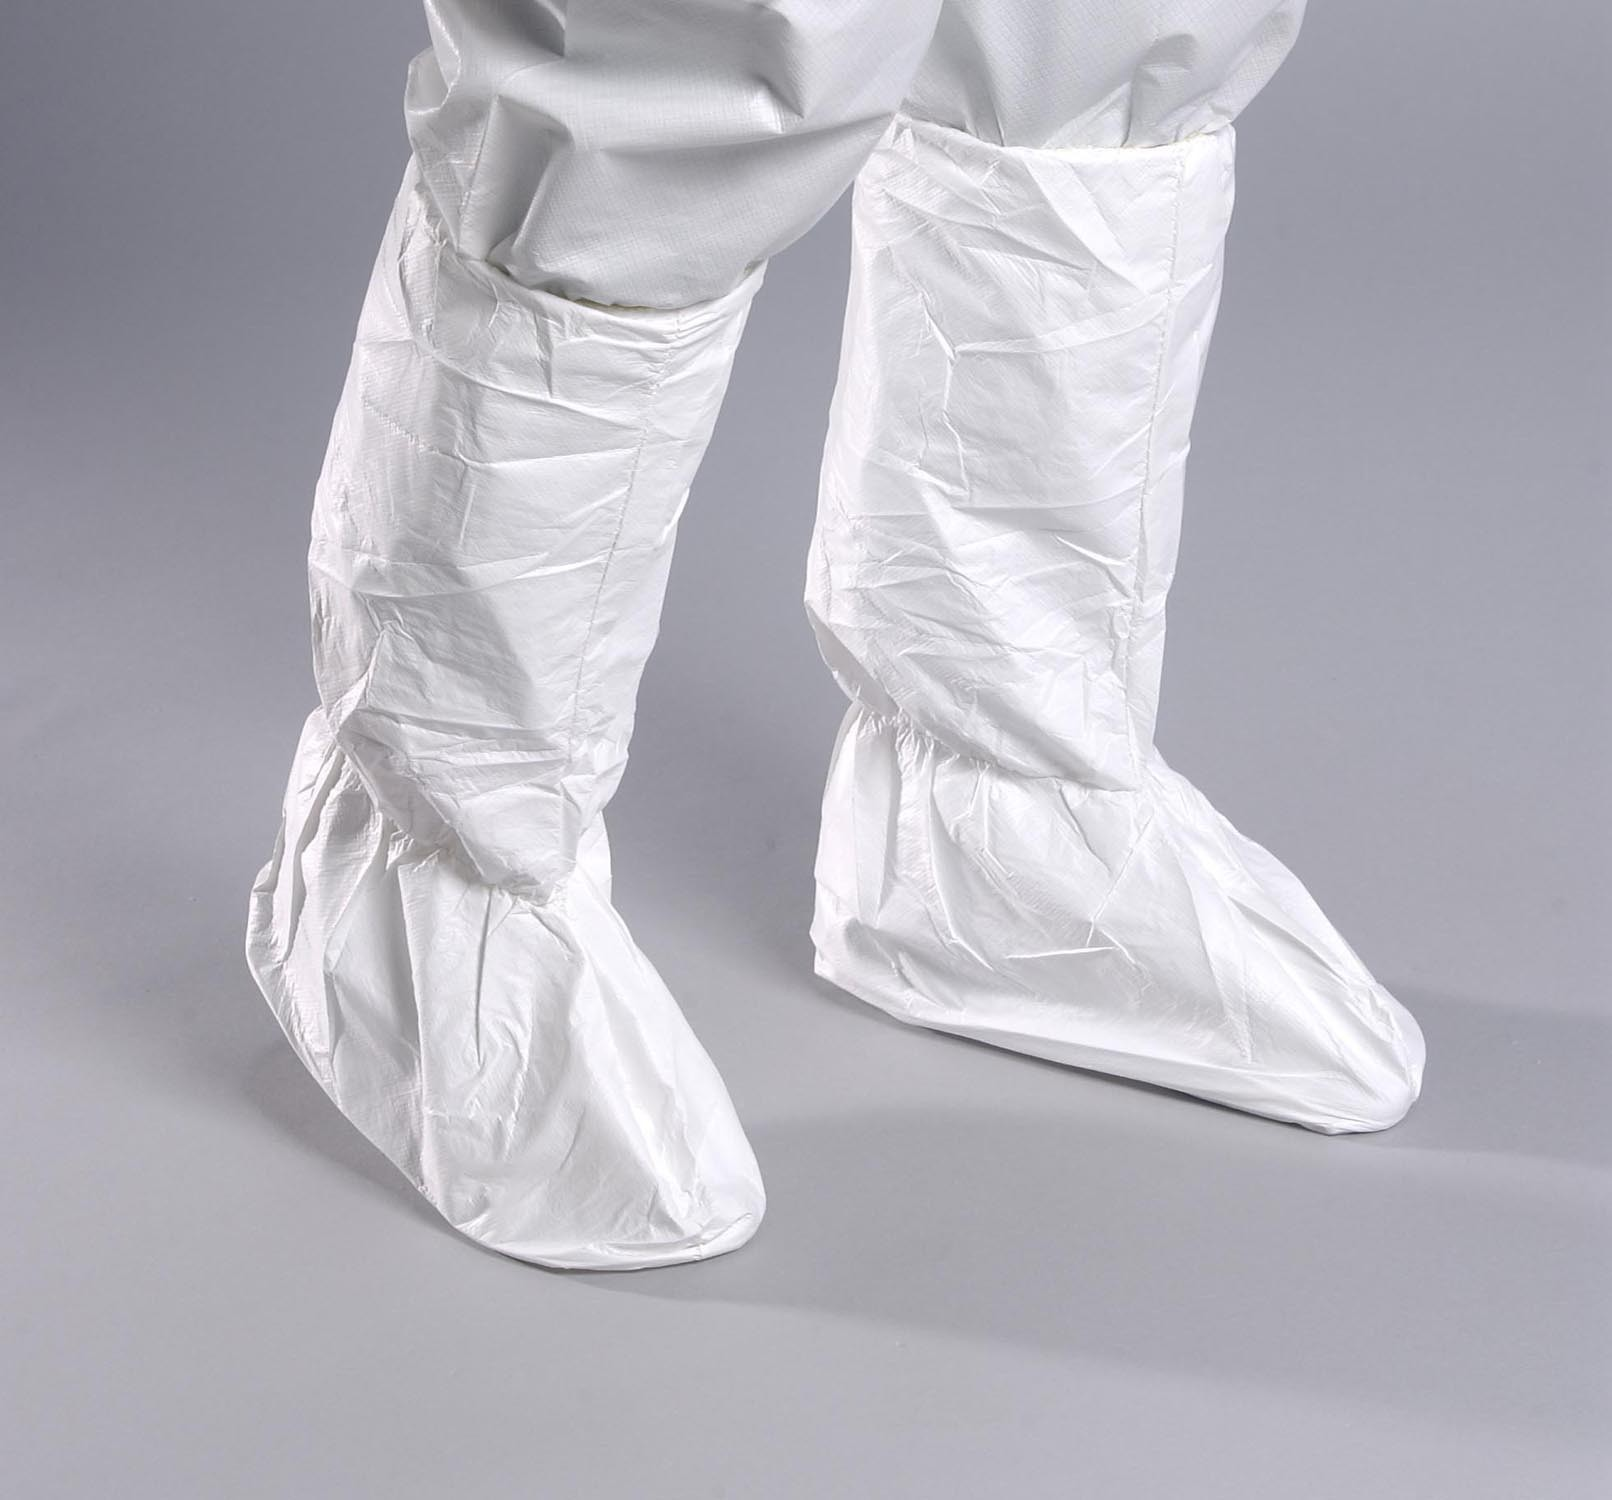 Microbreathe Ultragrip Boot Covers Cleanroom Shoe Covers